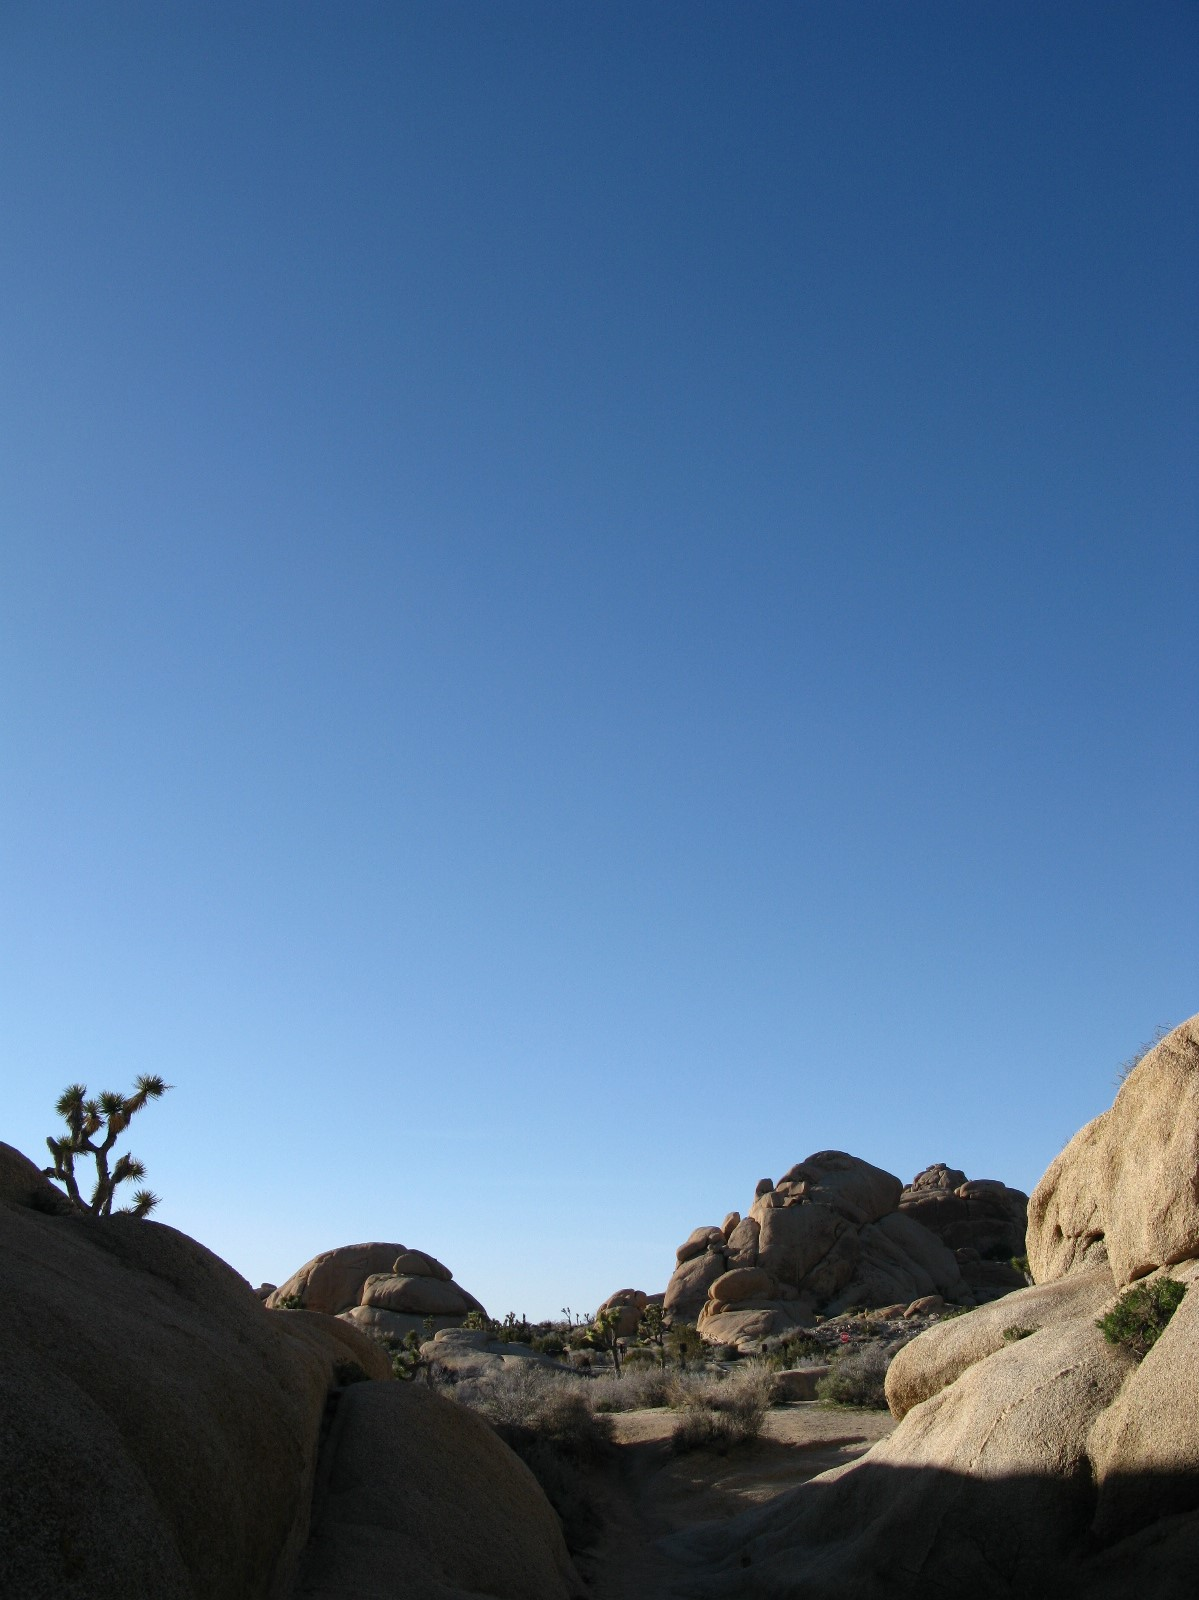 Photograph by the author. Barren grey rocks stand in heaps amidst desert scrub. A prickled Joshua tree twists its arms upwards on the left. Vaulting far, far above the desert vaults a clear sky in infinite shades of blue.